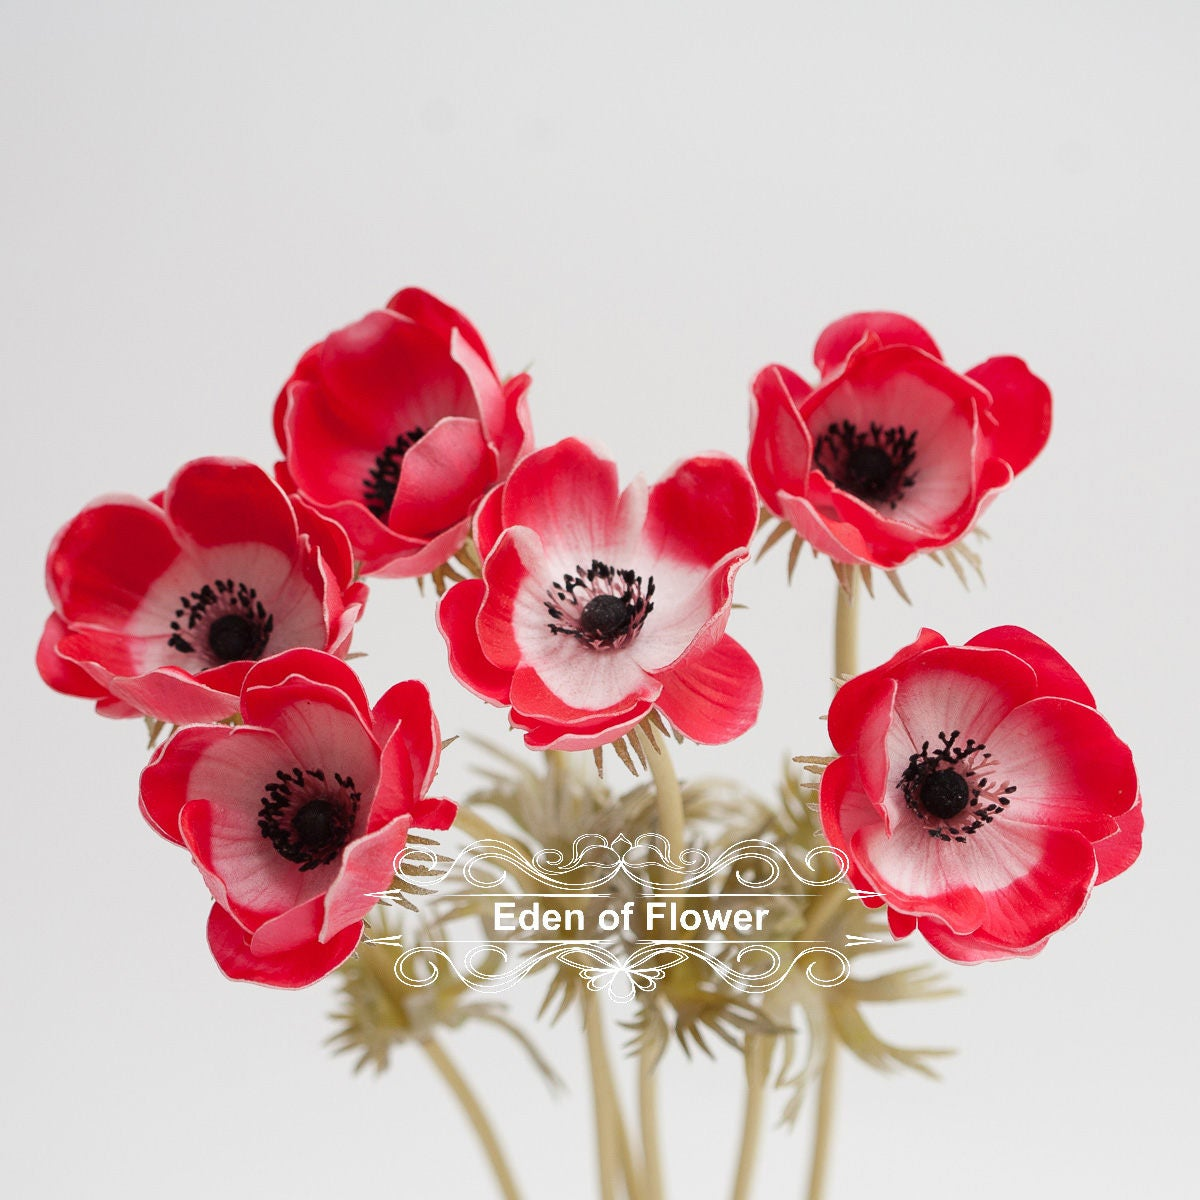 Red Anemones Poppy Real Touch Flowers Black Purple Center For